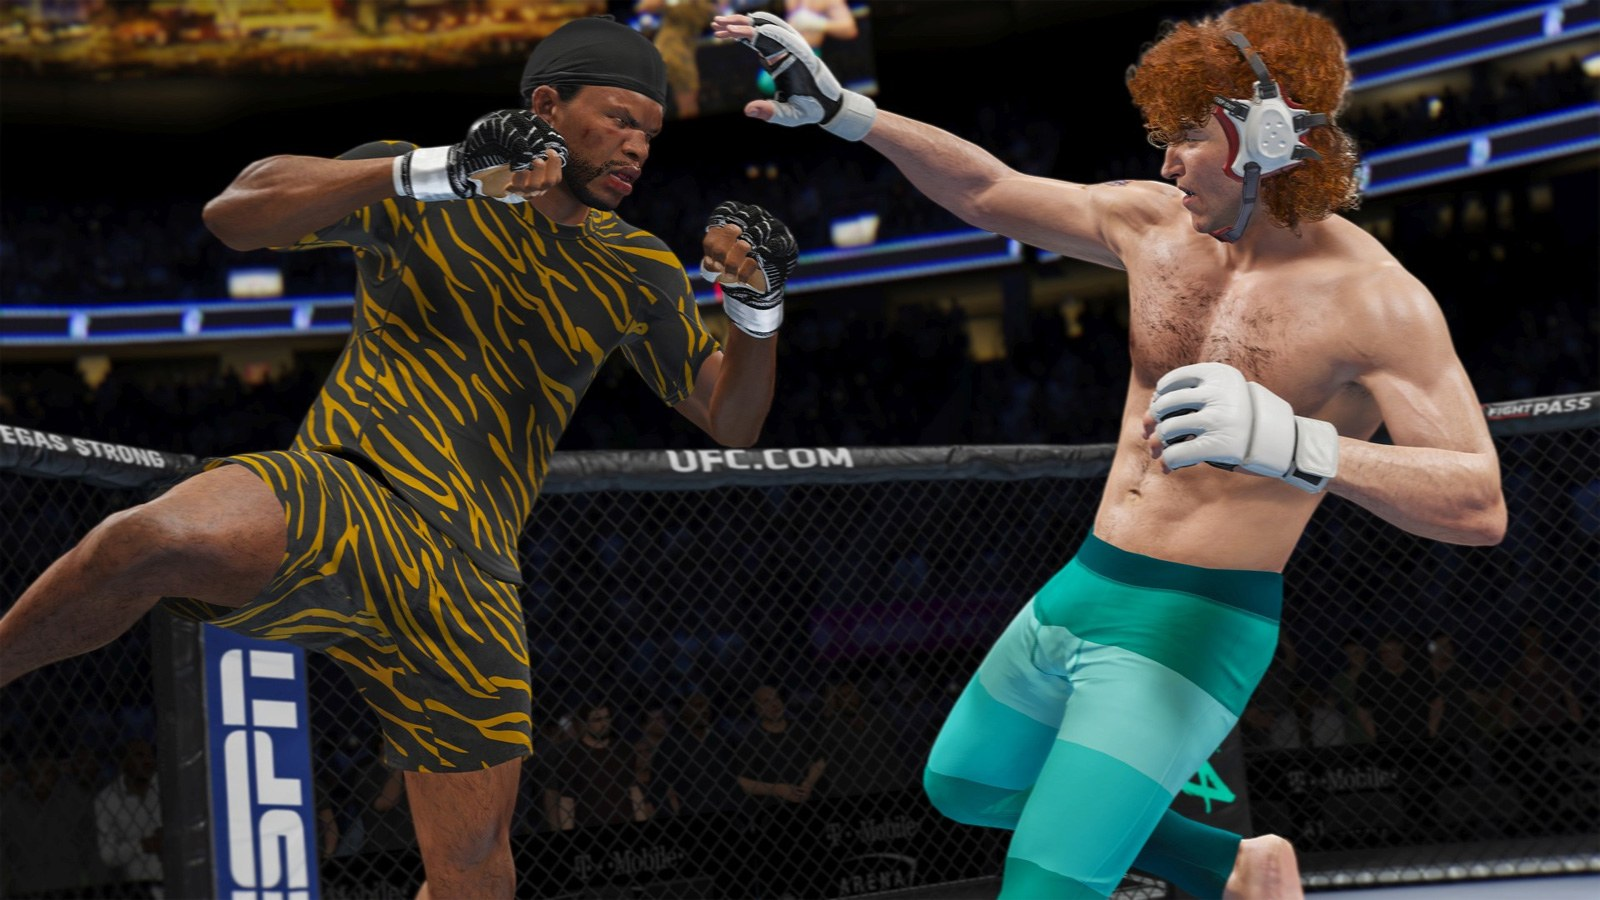 Ea S Ufc 4 Focuses On Your Fighter S Backstory Engadget